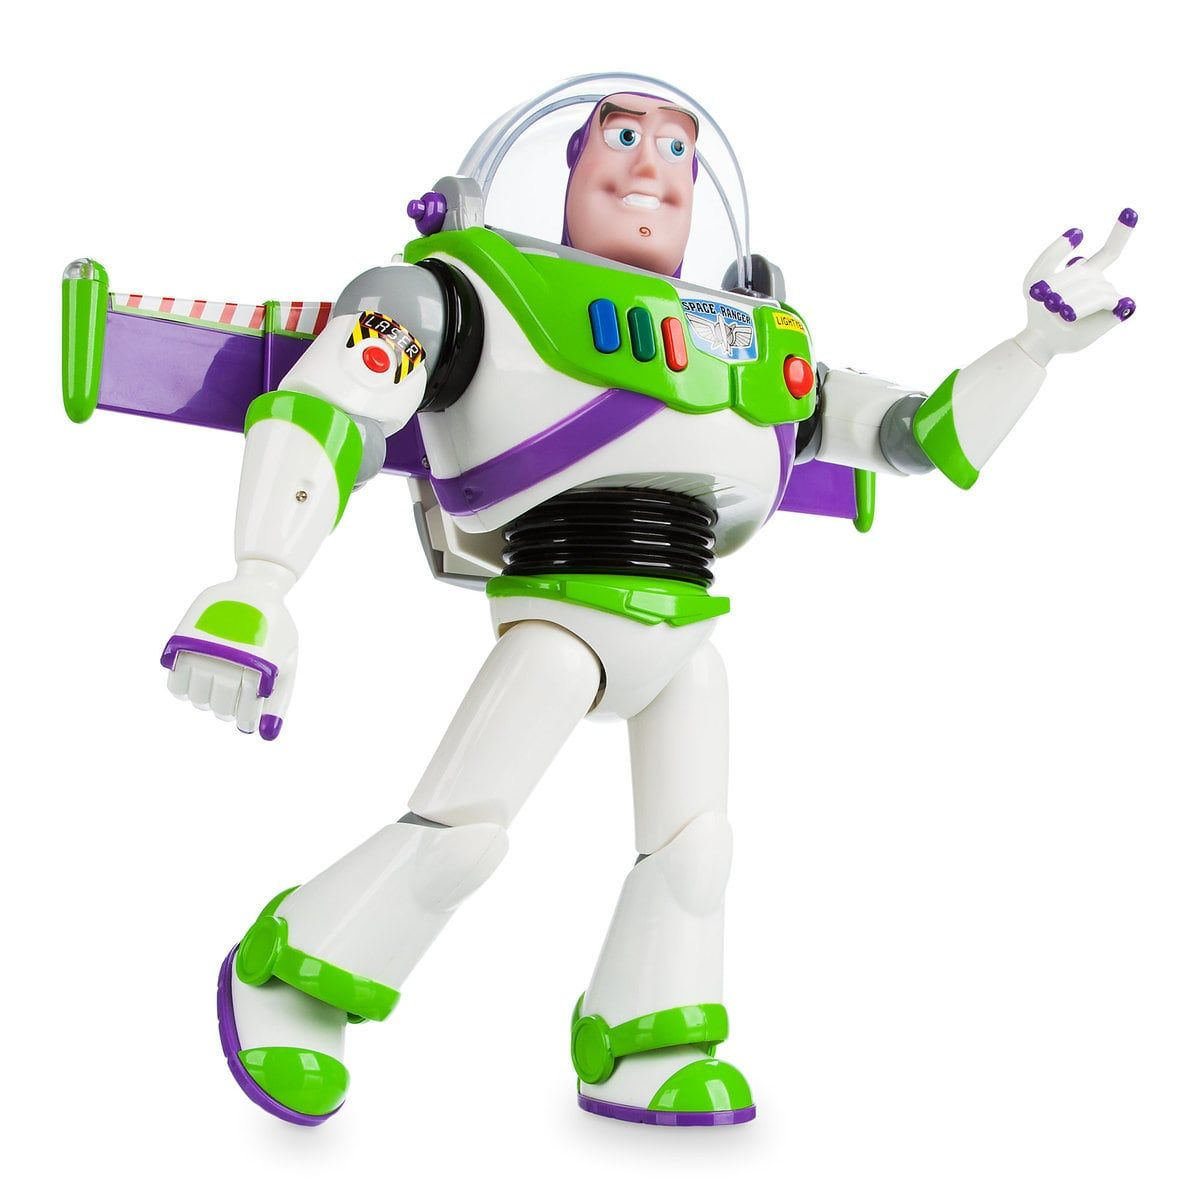 Buzz Lightyear Talking Action Figure